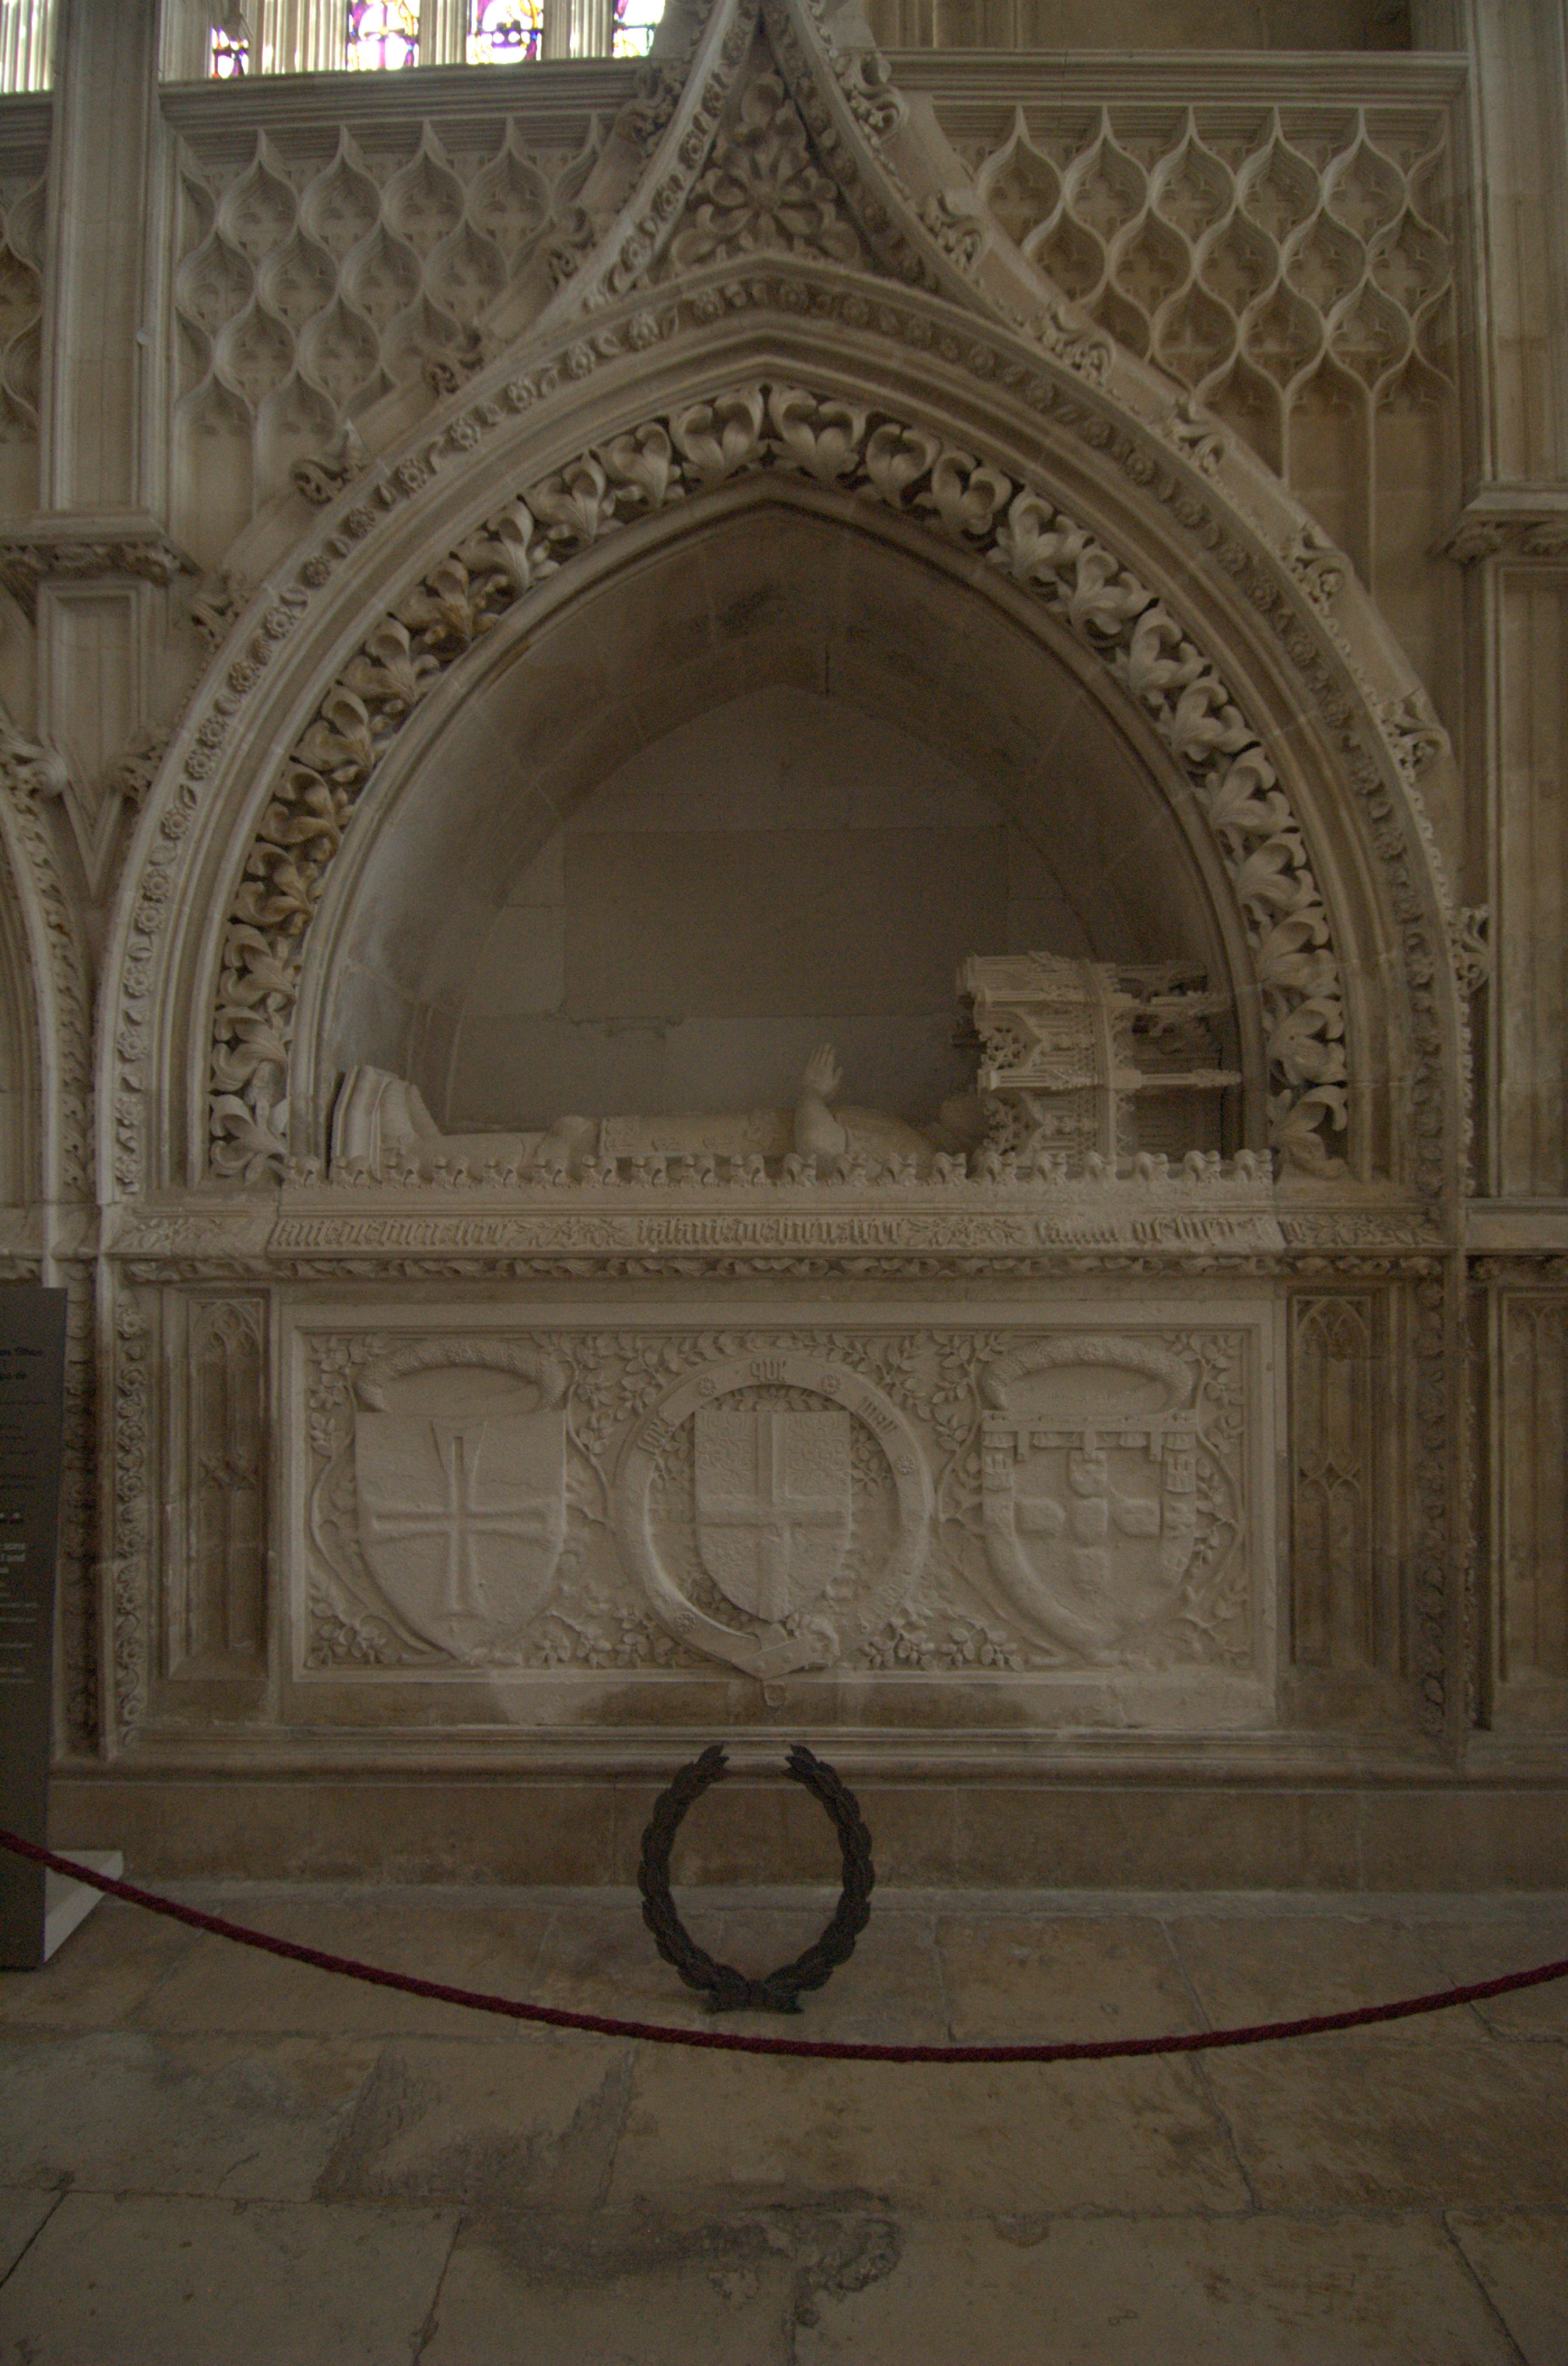 henry the navigator in the age of exploration  gothic tomb of henry the navigator in the batalha monastery